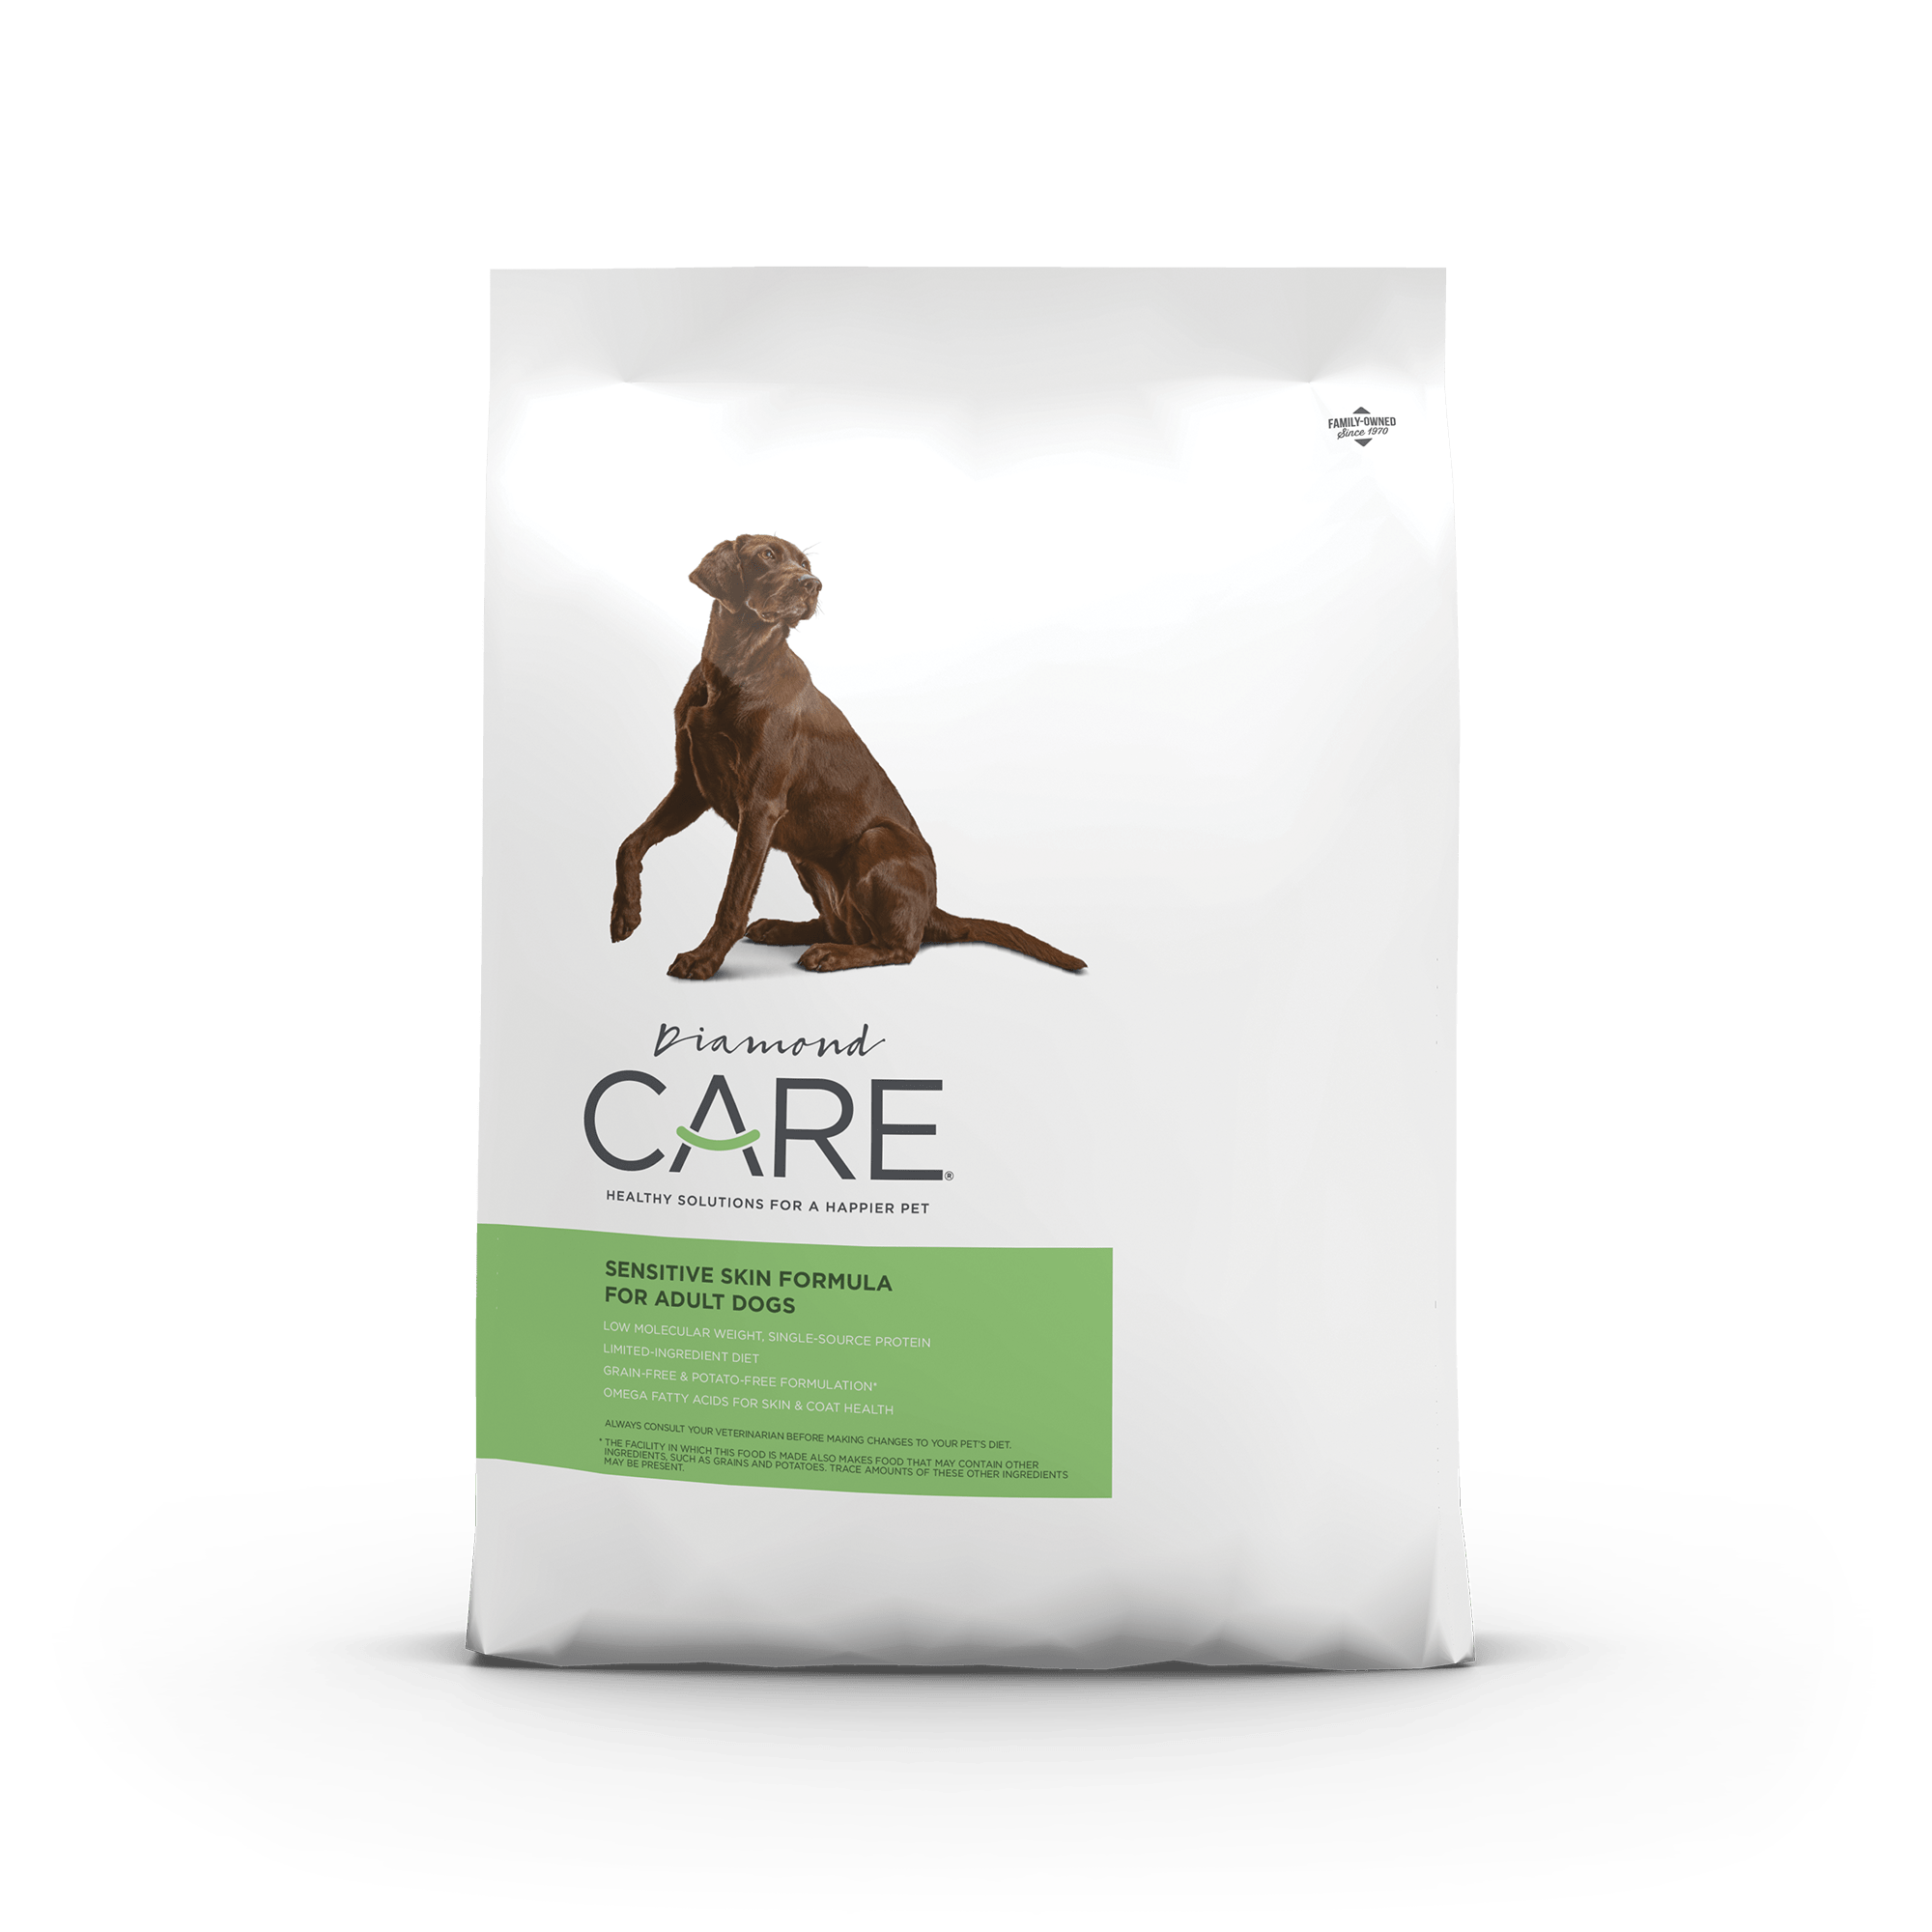 Diamond CARE Sensitive Skin Formula for Adult Dogs product packaging